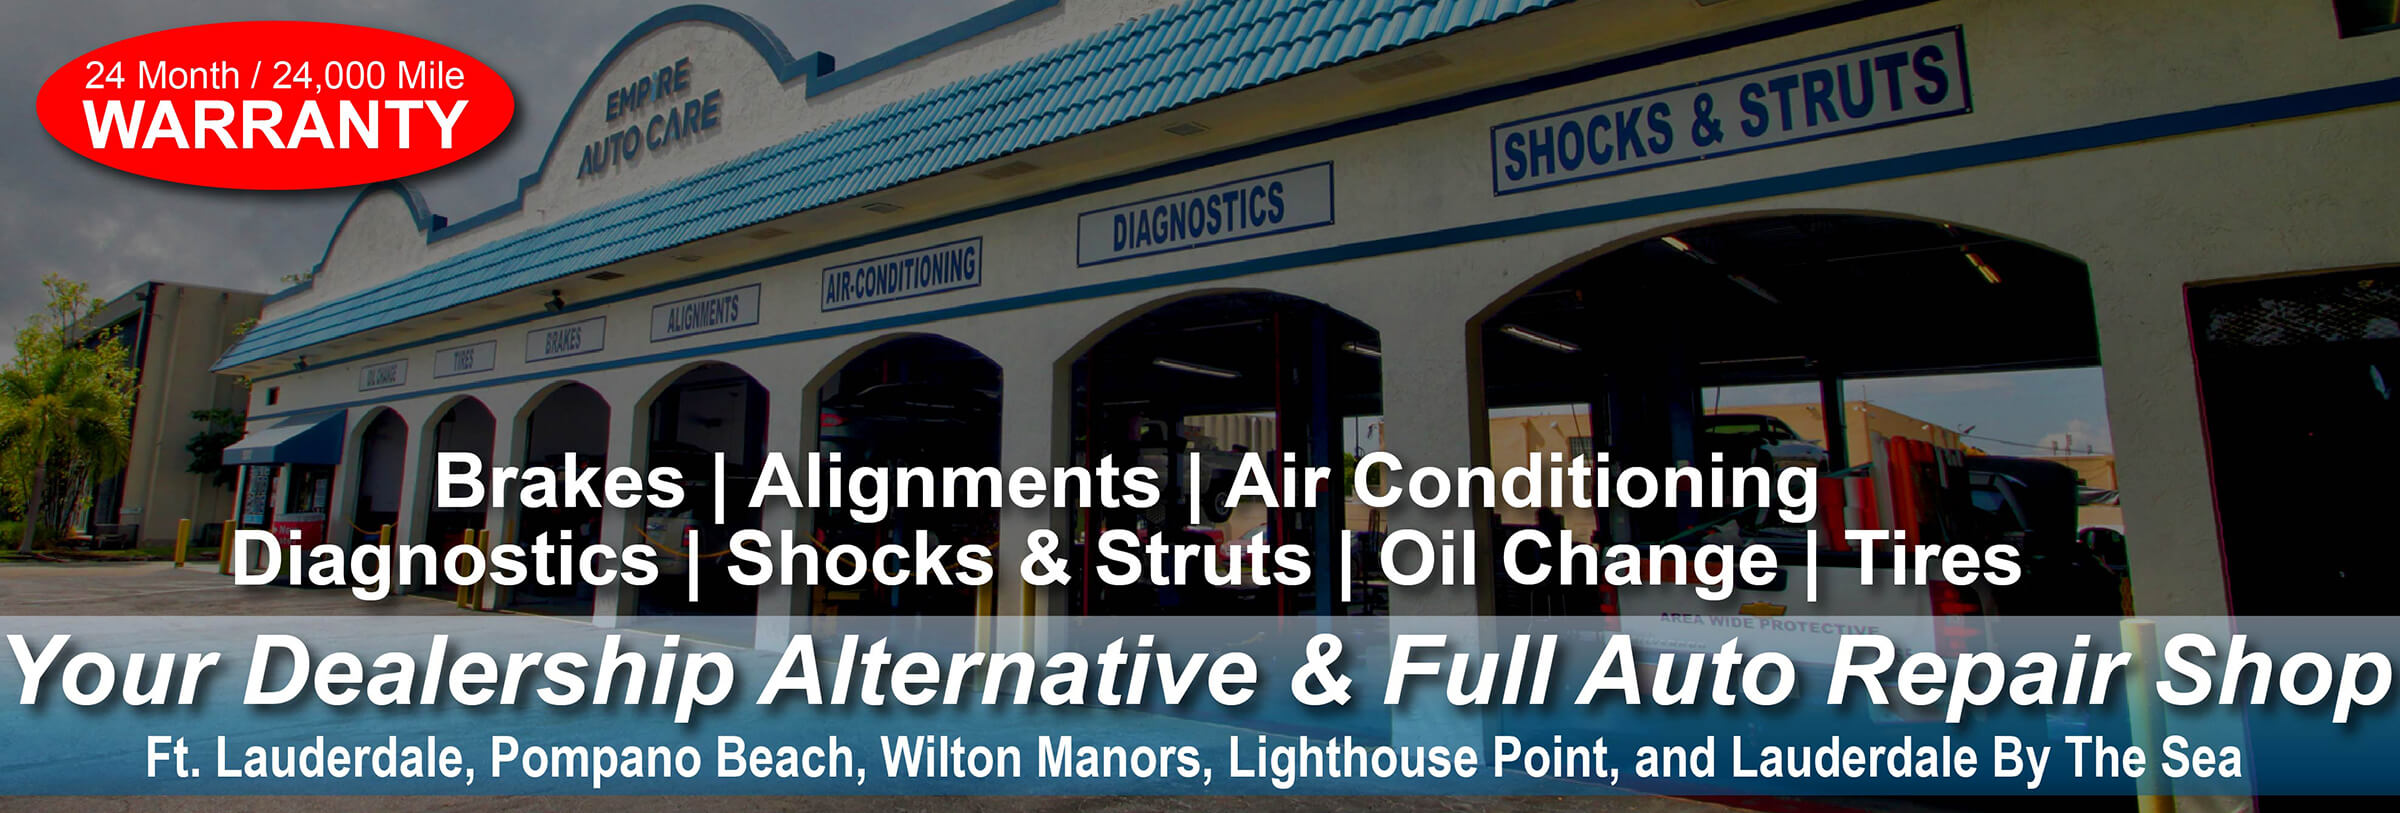 Auto Repair Ft  Lauderdale, Pompano Beach, Wilton Manors, Lighthouse